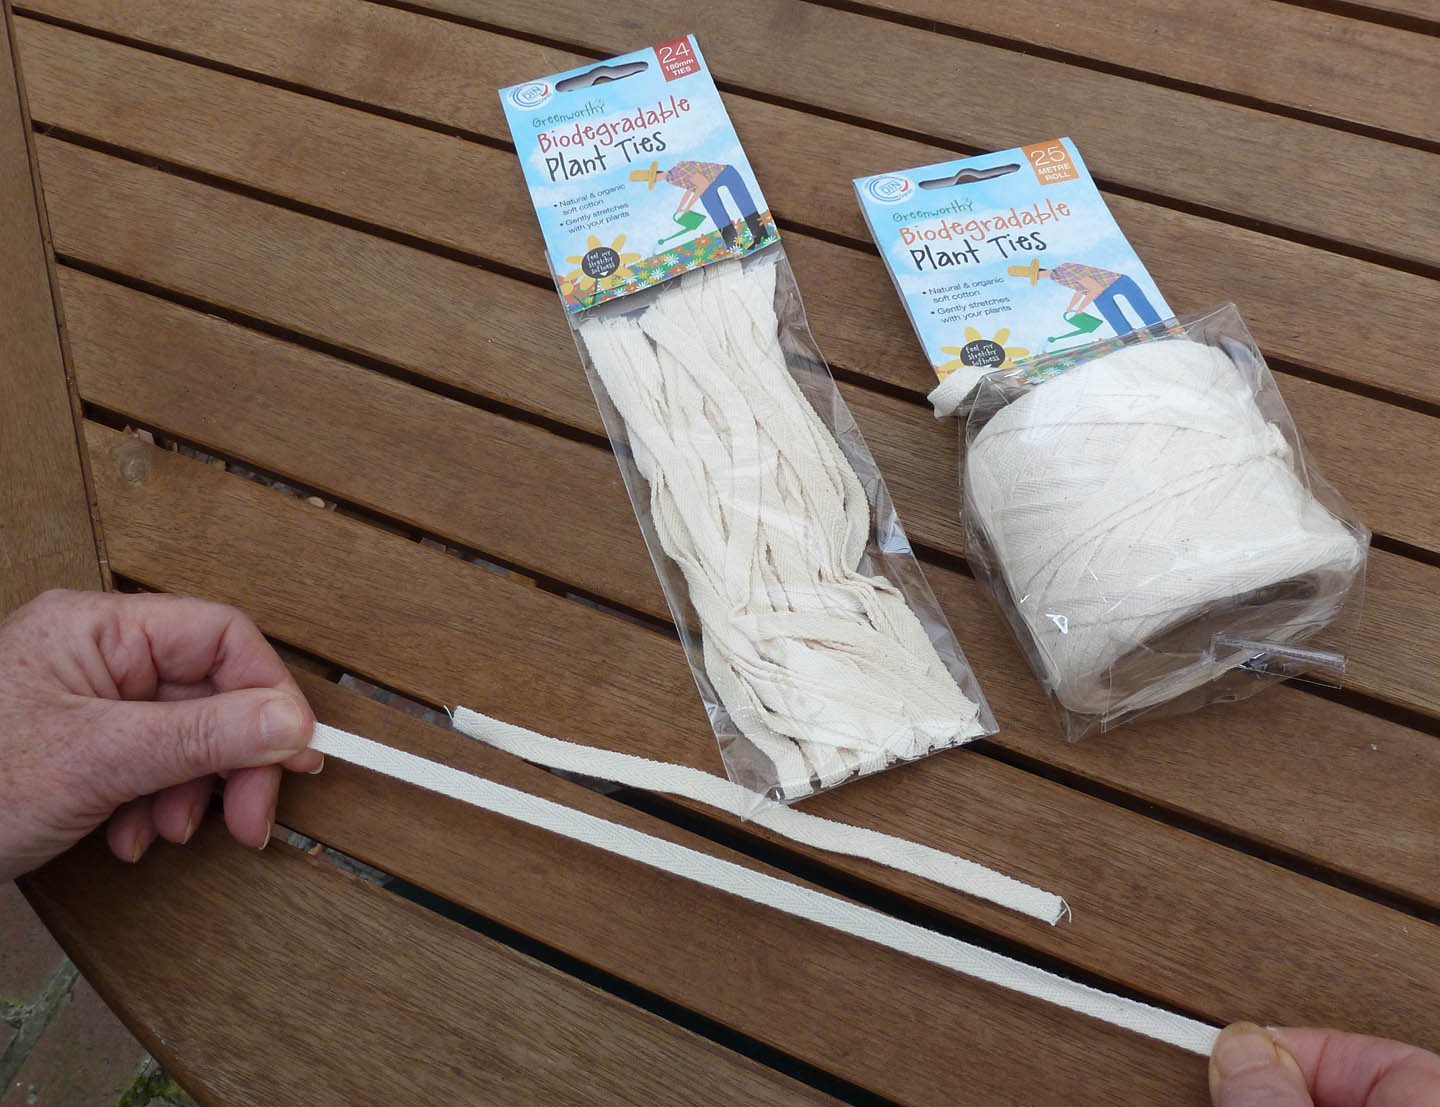 Biodegradable Plant Ties (Greenworthy). Pure Cotton And Biodegradable,  These Are Woven So They Stretch Gently And Donu0027t Cut Into Growing Plants.